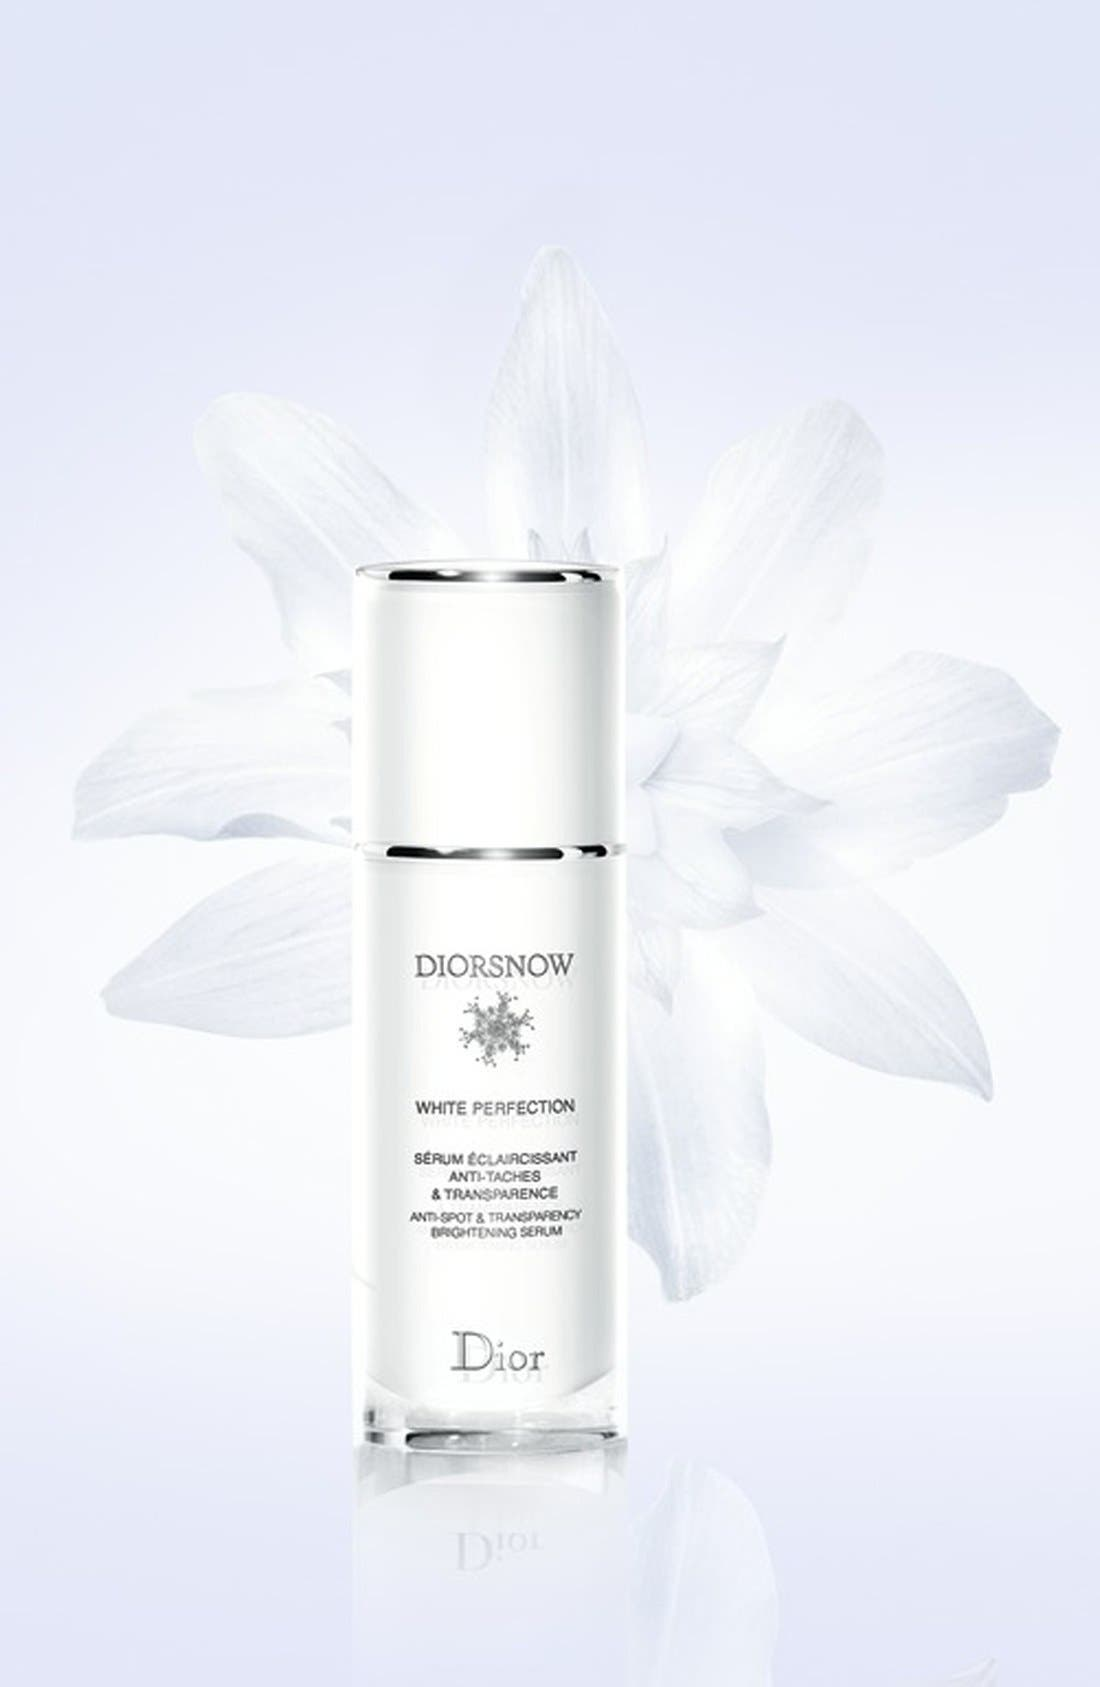 'Diorsnow' White Perfection Anti-Spot & Transparency Brightening Serum Refill,                             Alternate thumbnail 2, color,                             000